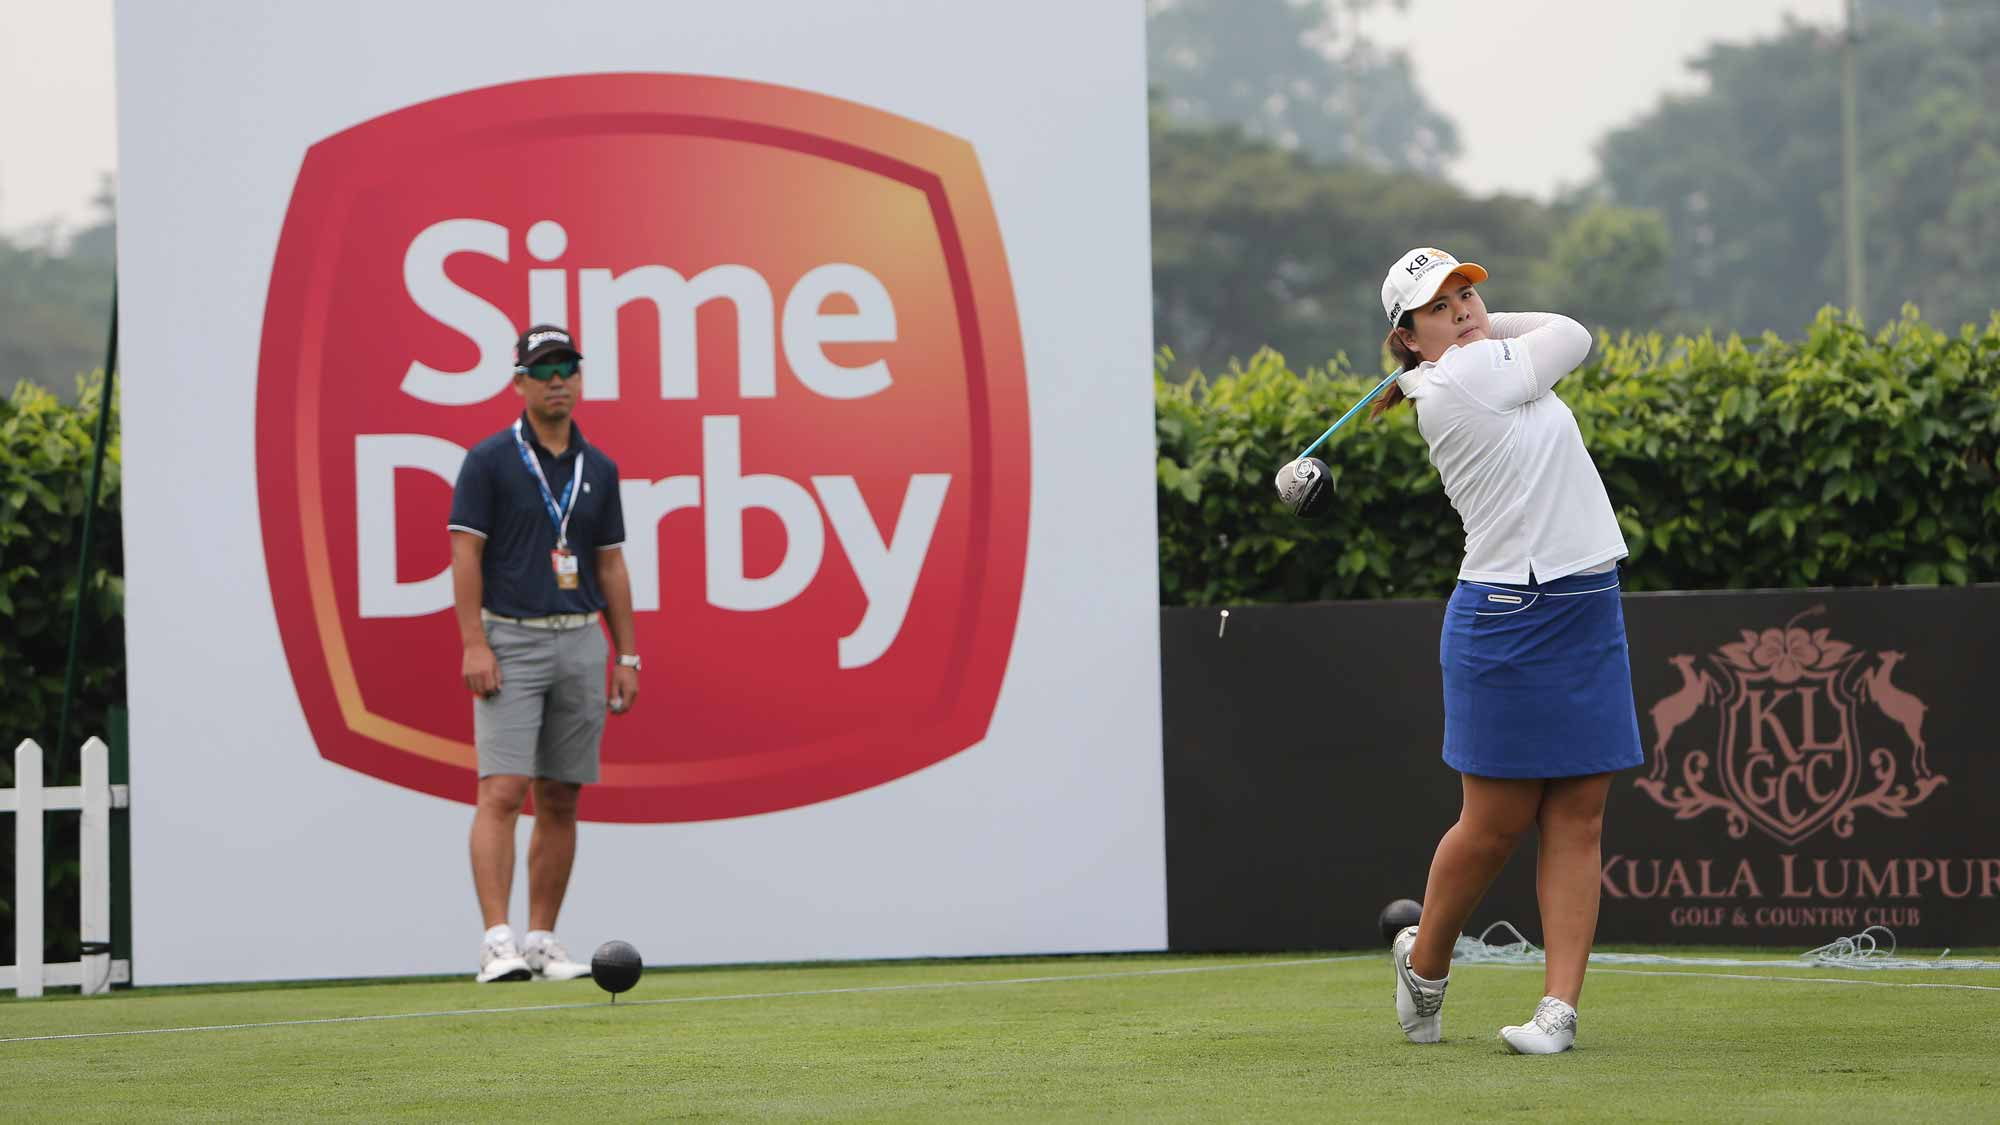 Inbee Park during her practice round at the 2015 Sime Darby LPGA Malaysia